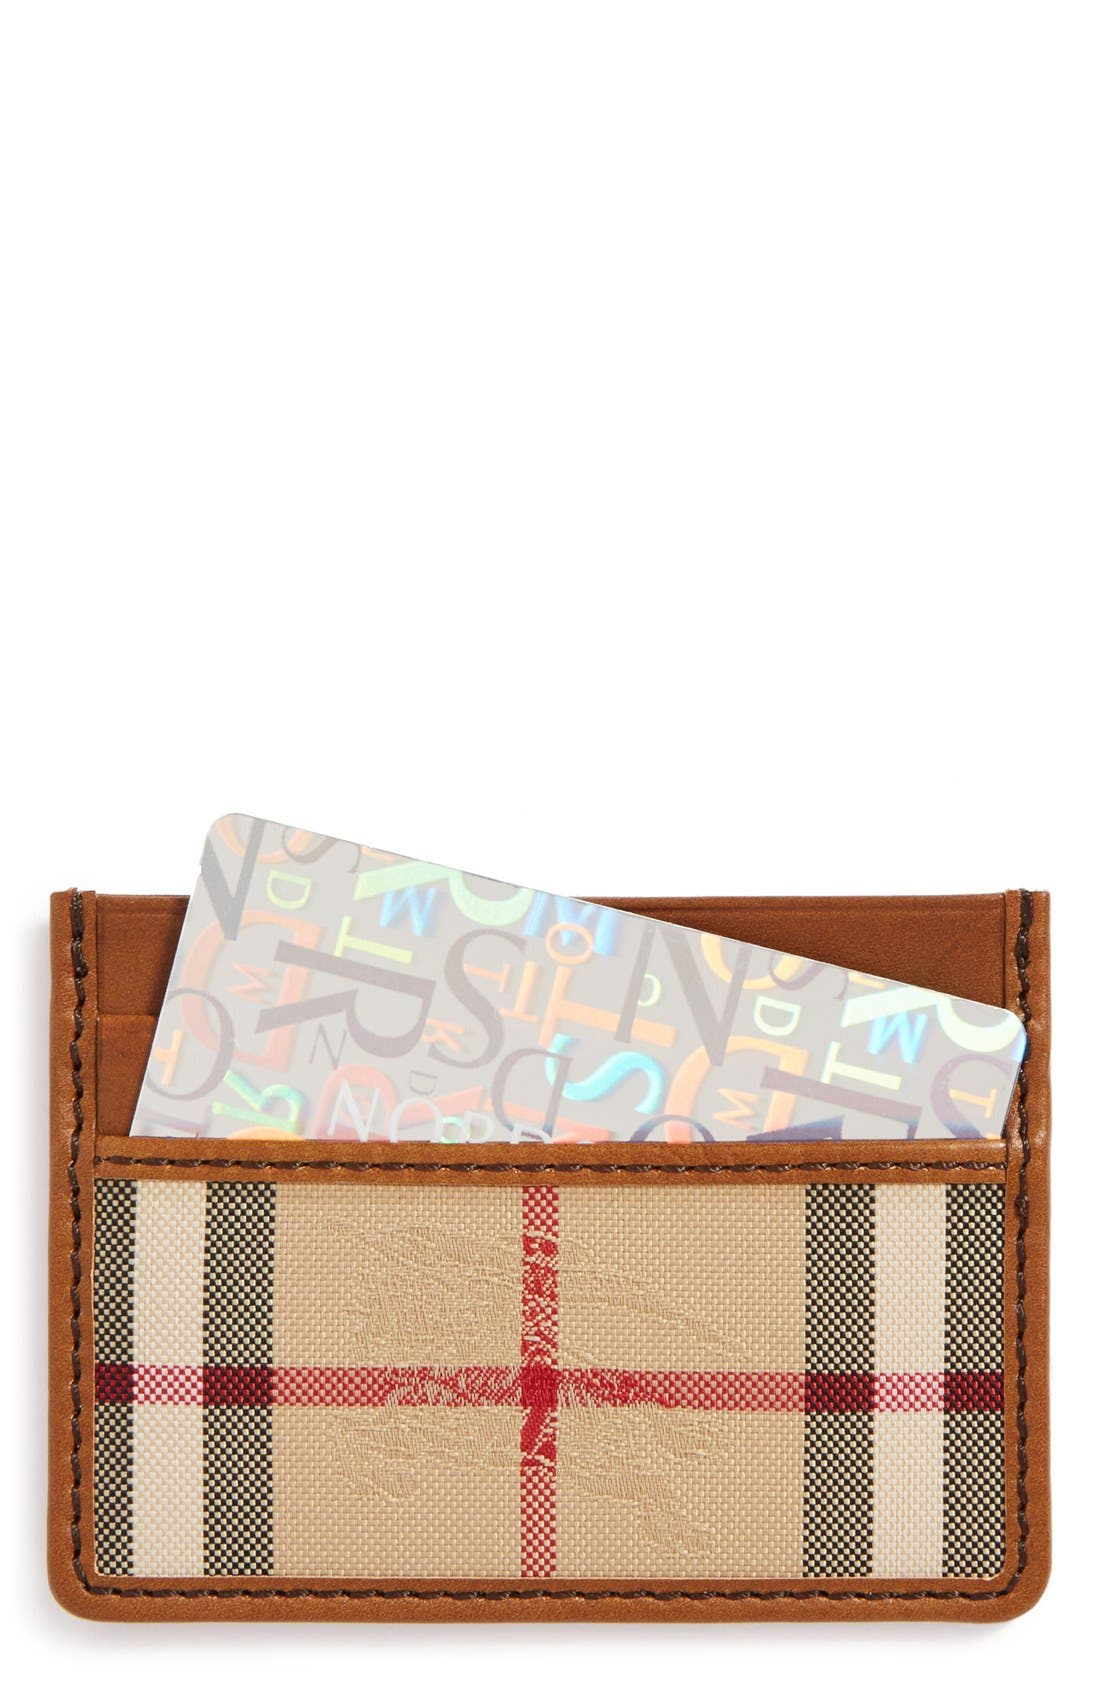 Sandon Horseferry Check Card Case,                         Main,                         color, 216